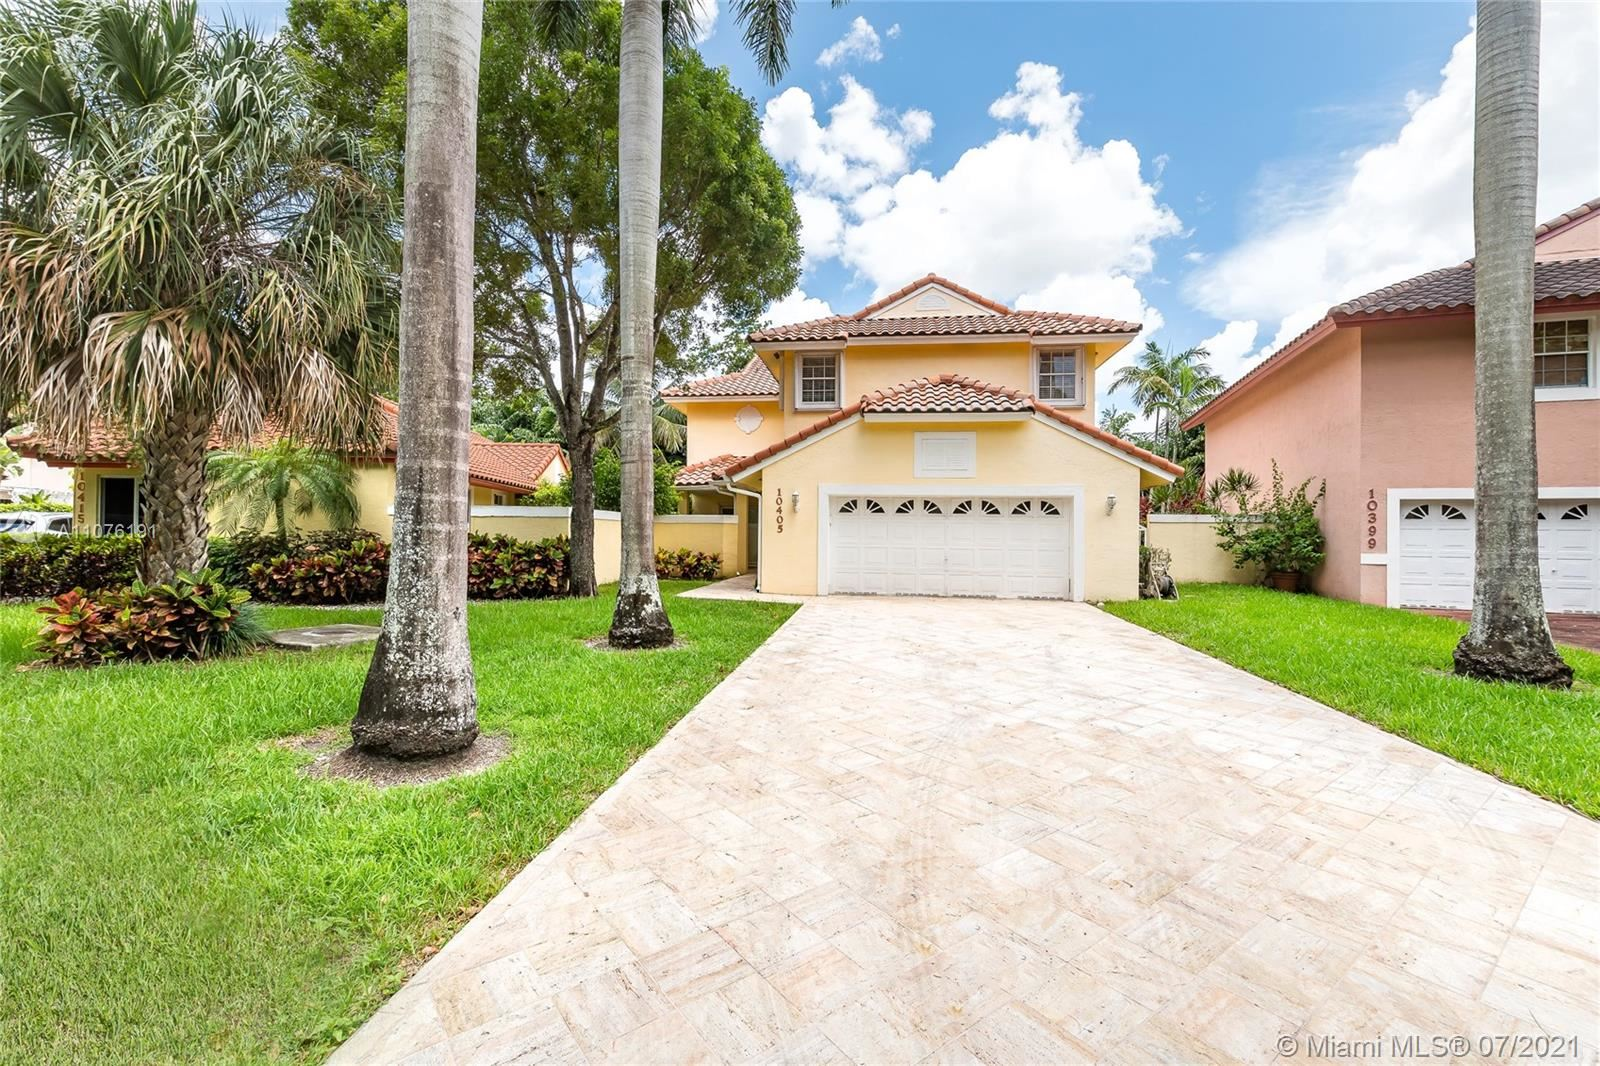 Photo of 10405 NW 43rd Ter, Doral, FL 33178 (MLS # A11076191)